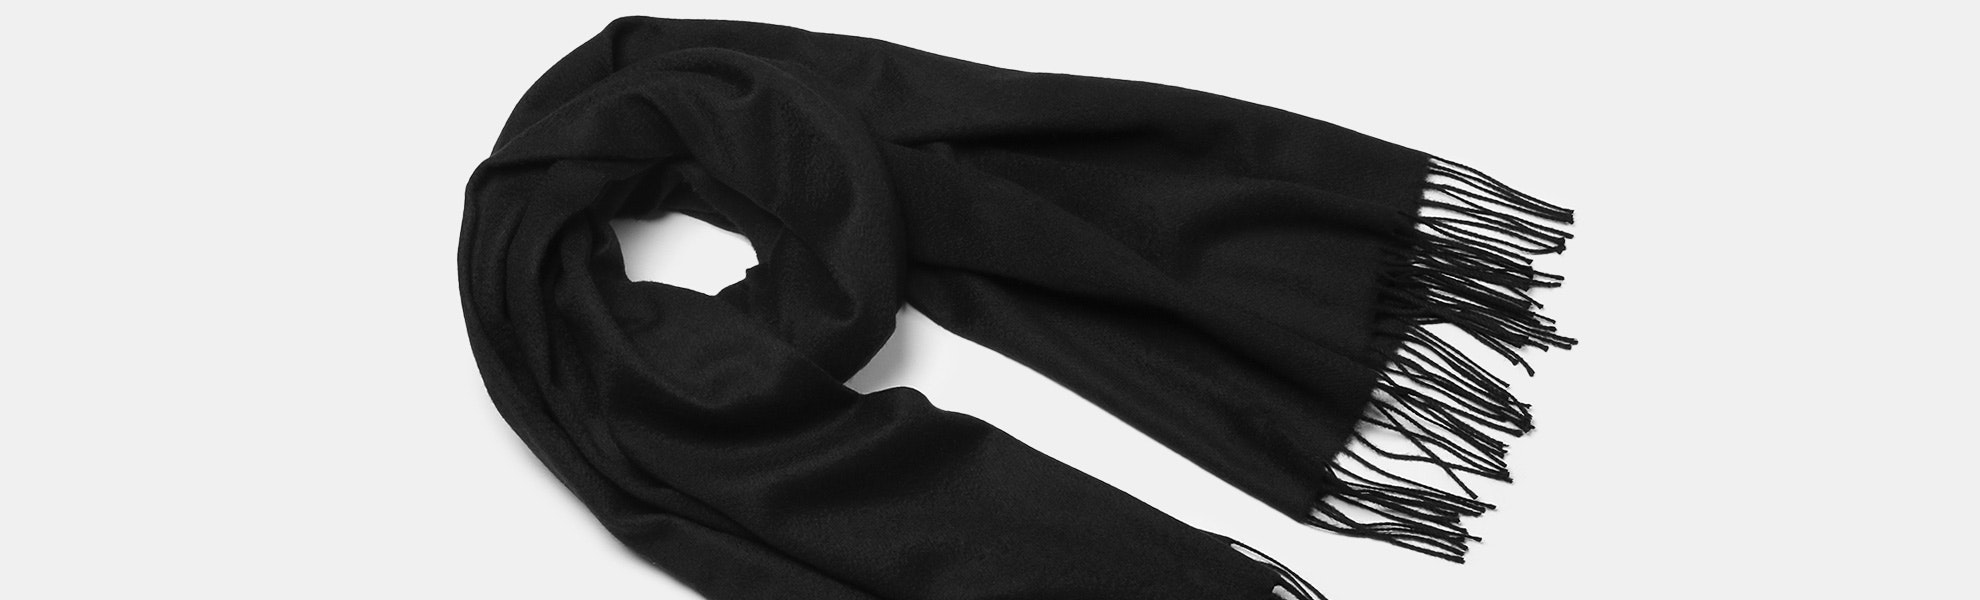 Hogarth Large Cashmere-Lambswool Scarf